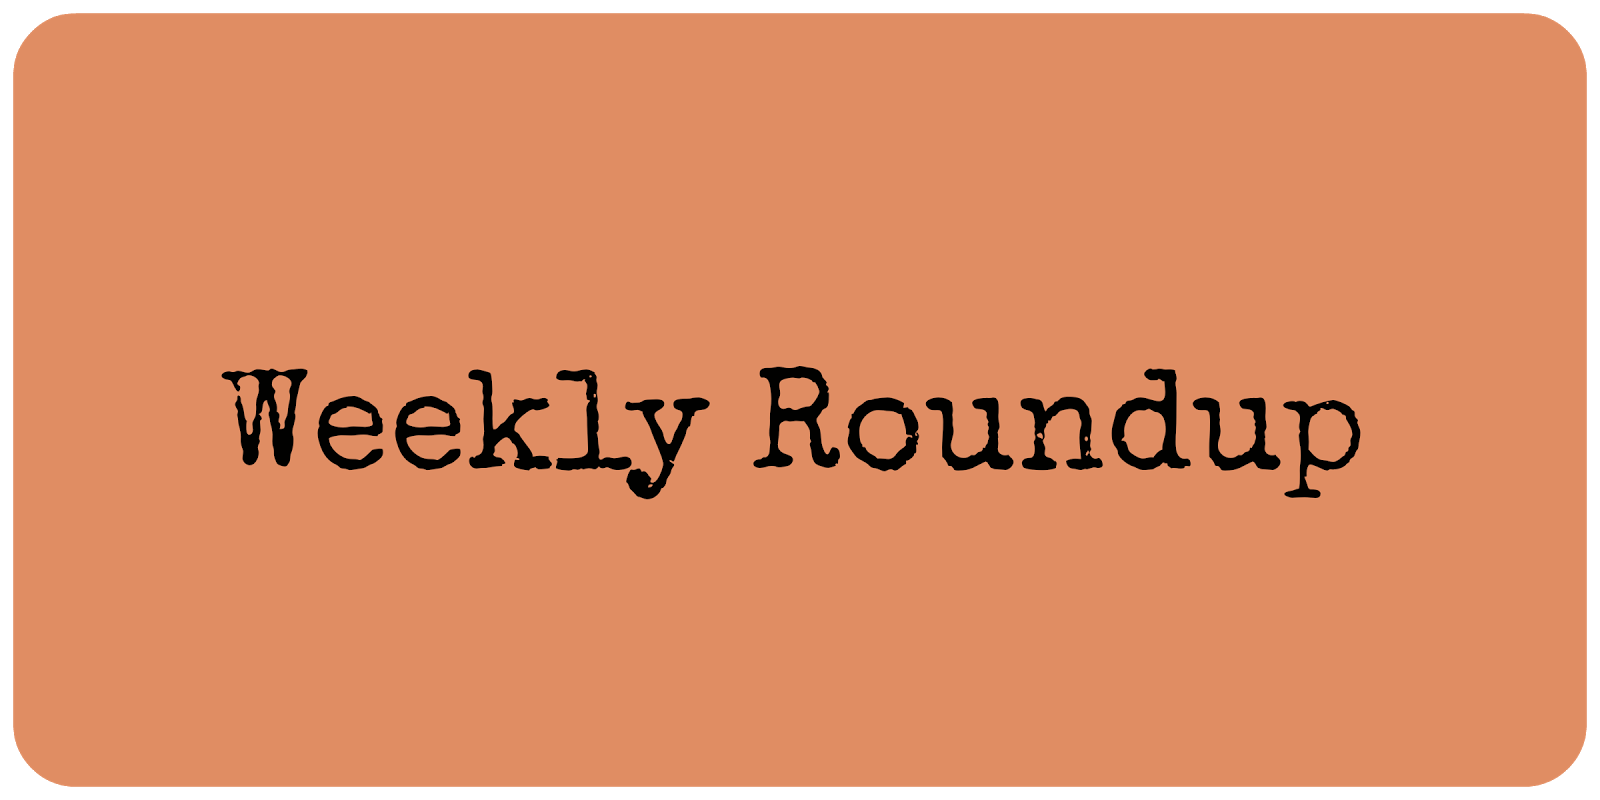 Fashion style Roundup weekly 4 for woman